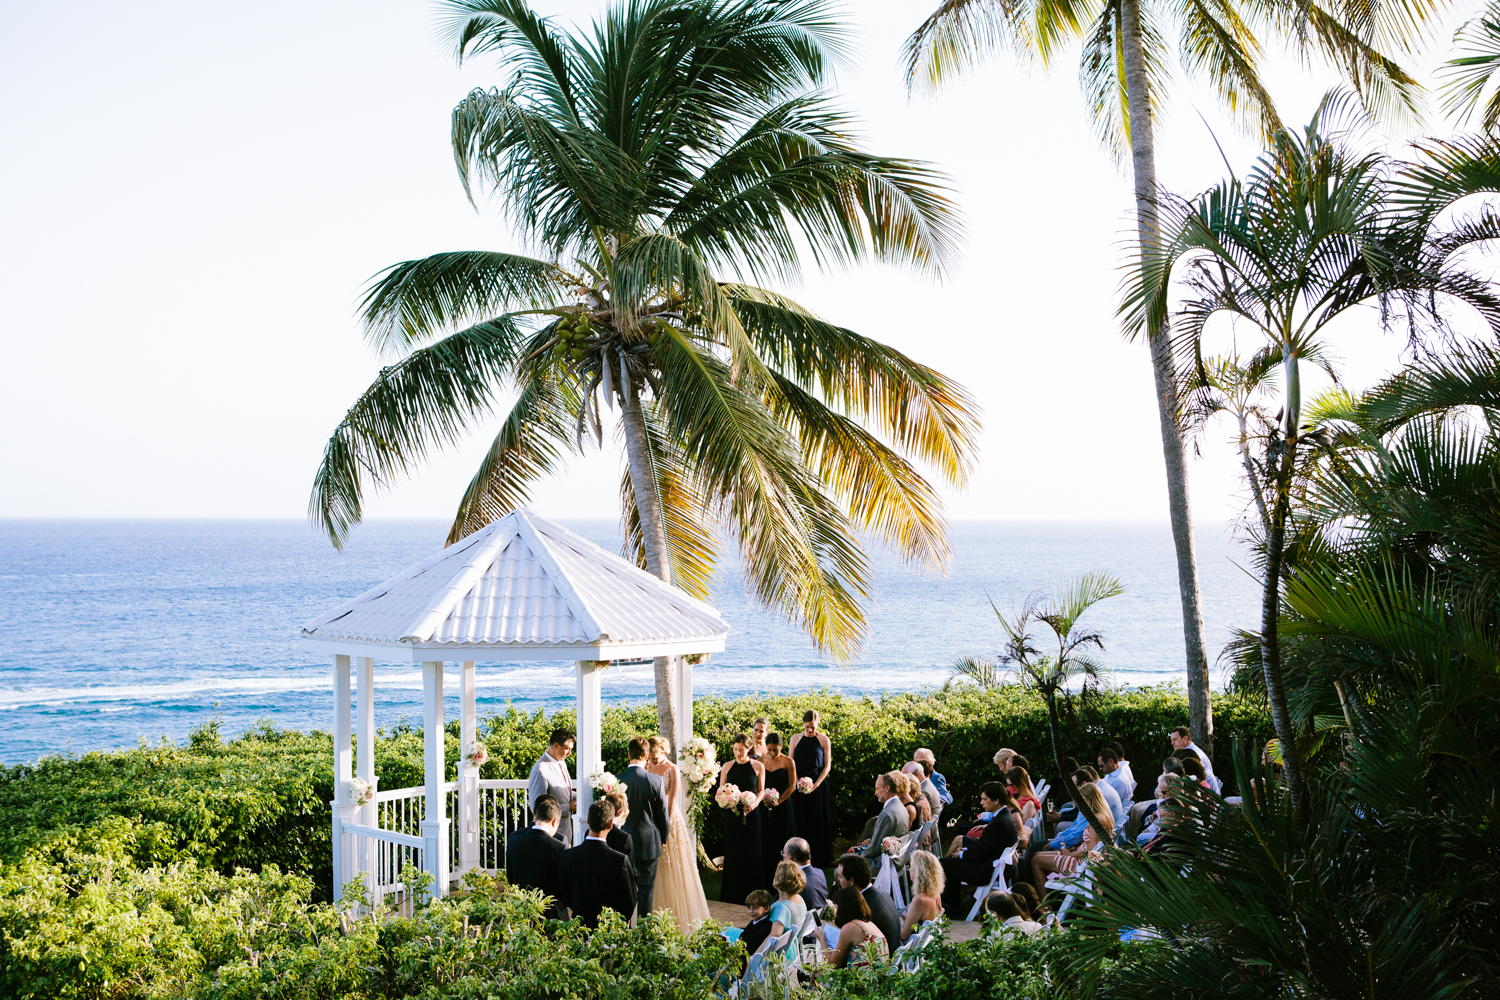 St.Thomas.FrenchmansReef.Wedding.Leme45.jpg